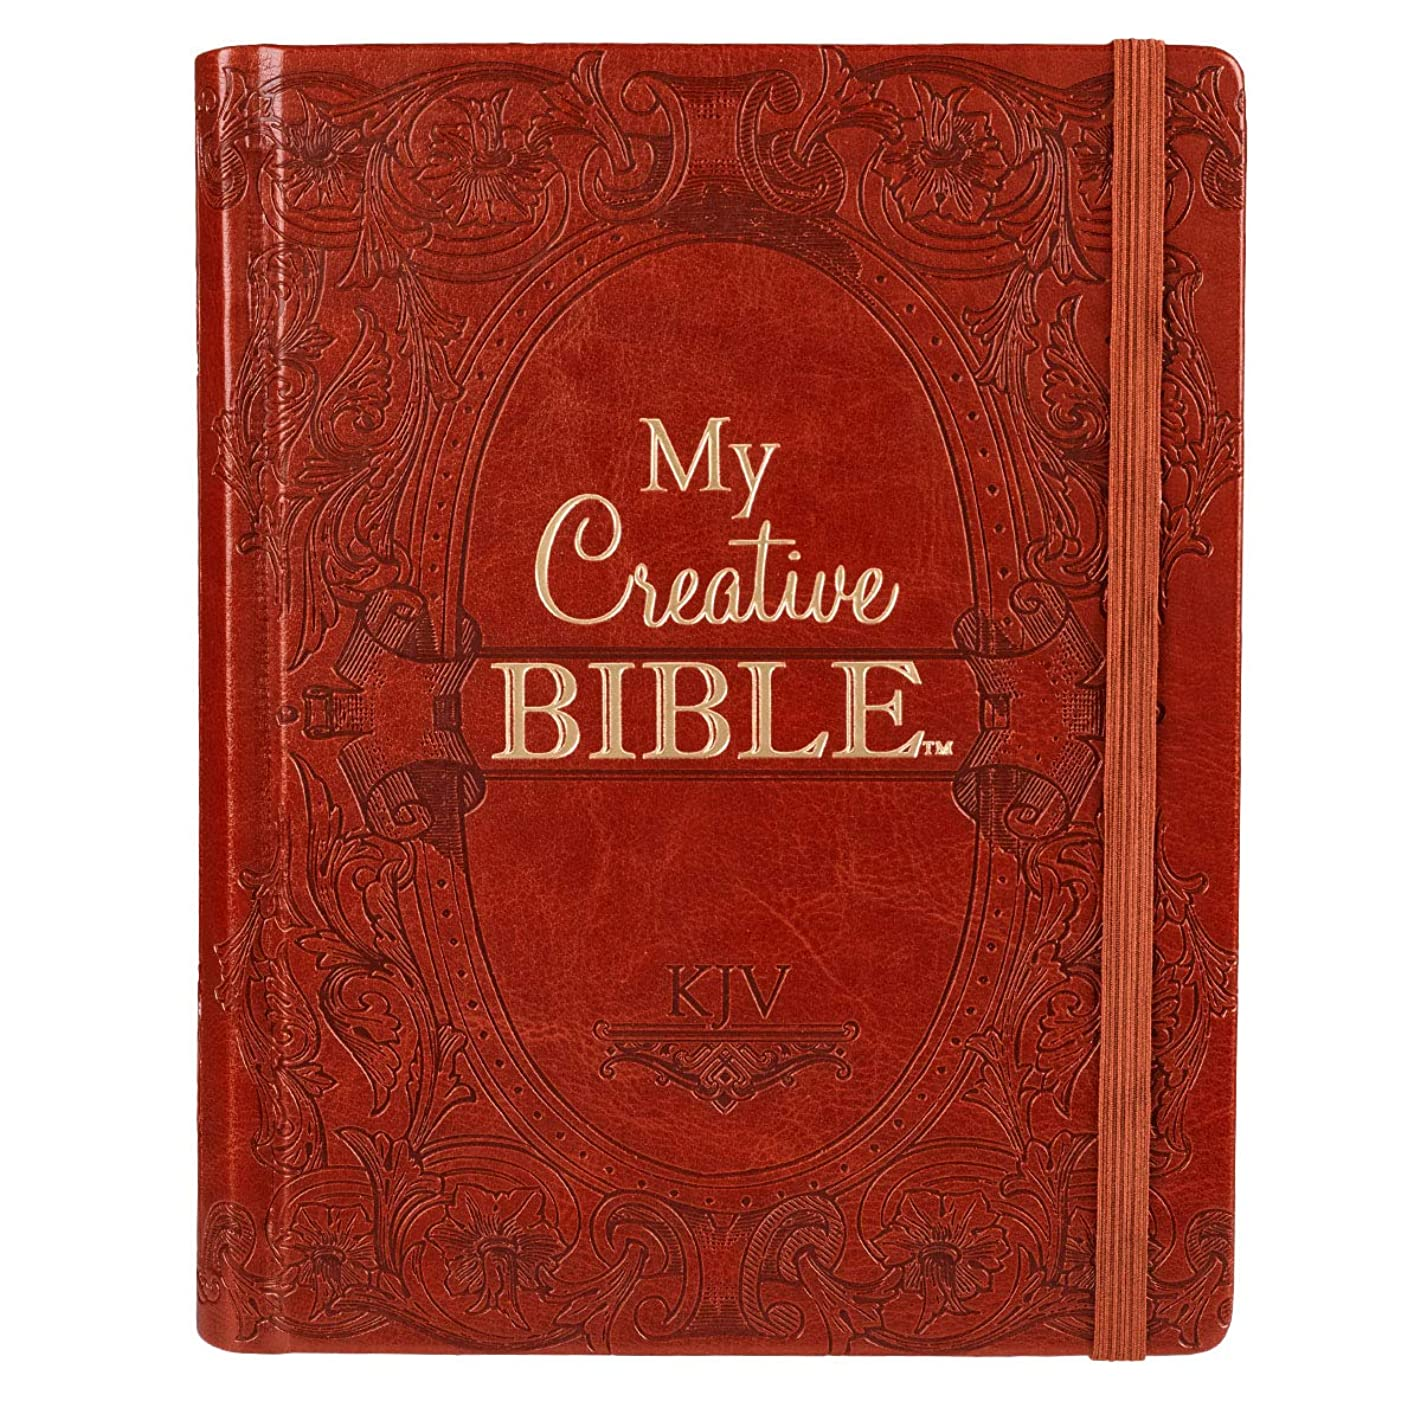 Holy Bible: My Creative Bible KJV: Tan Hardcover Bible for Creative Journaling